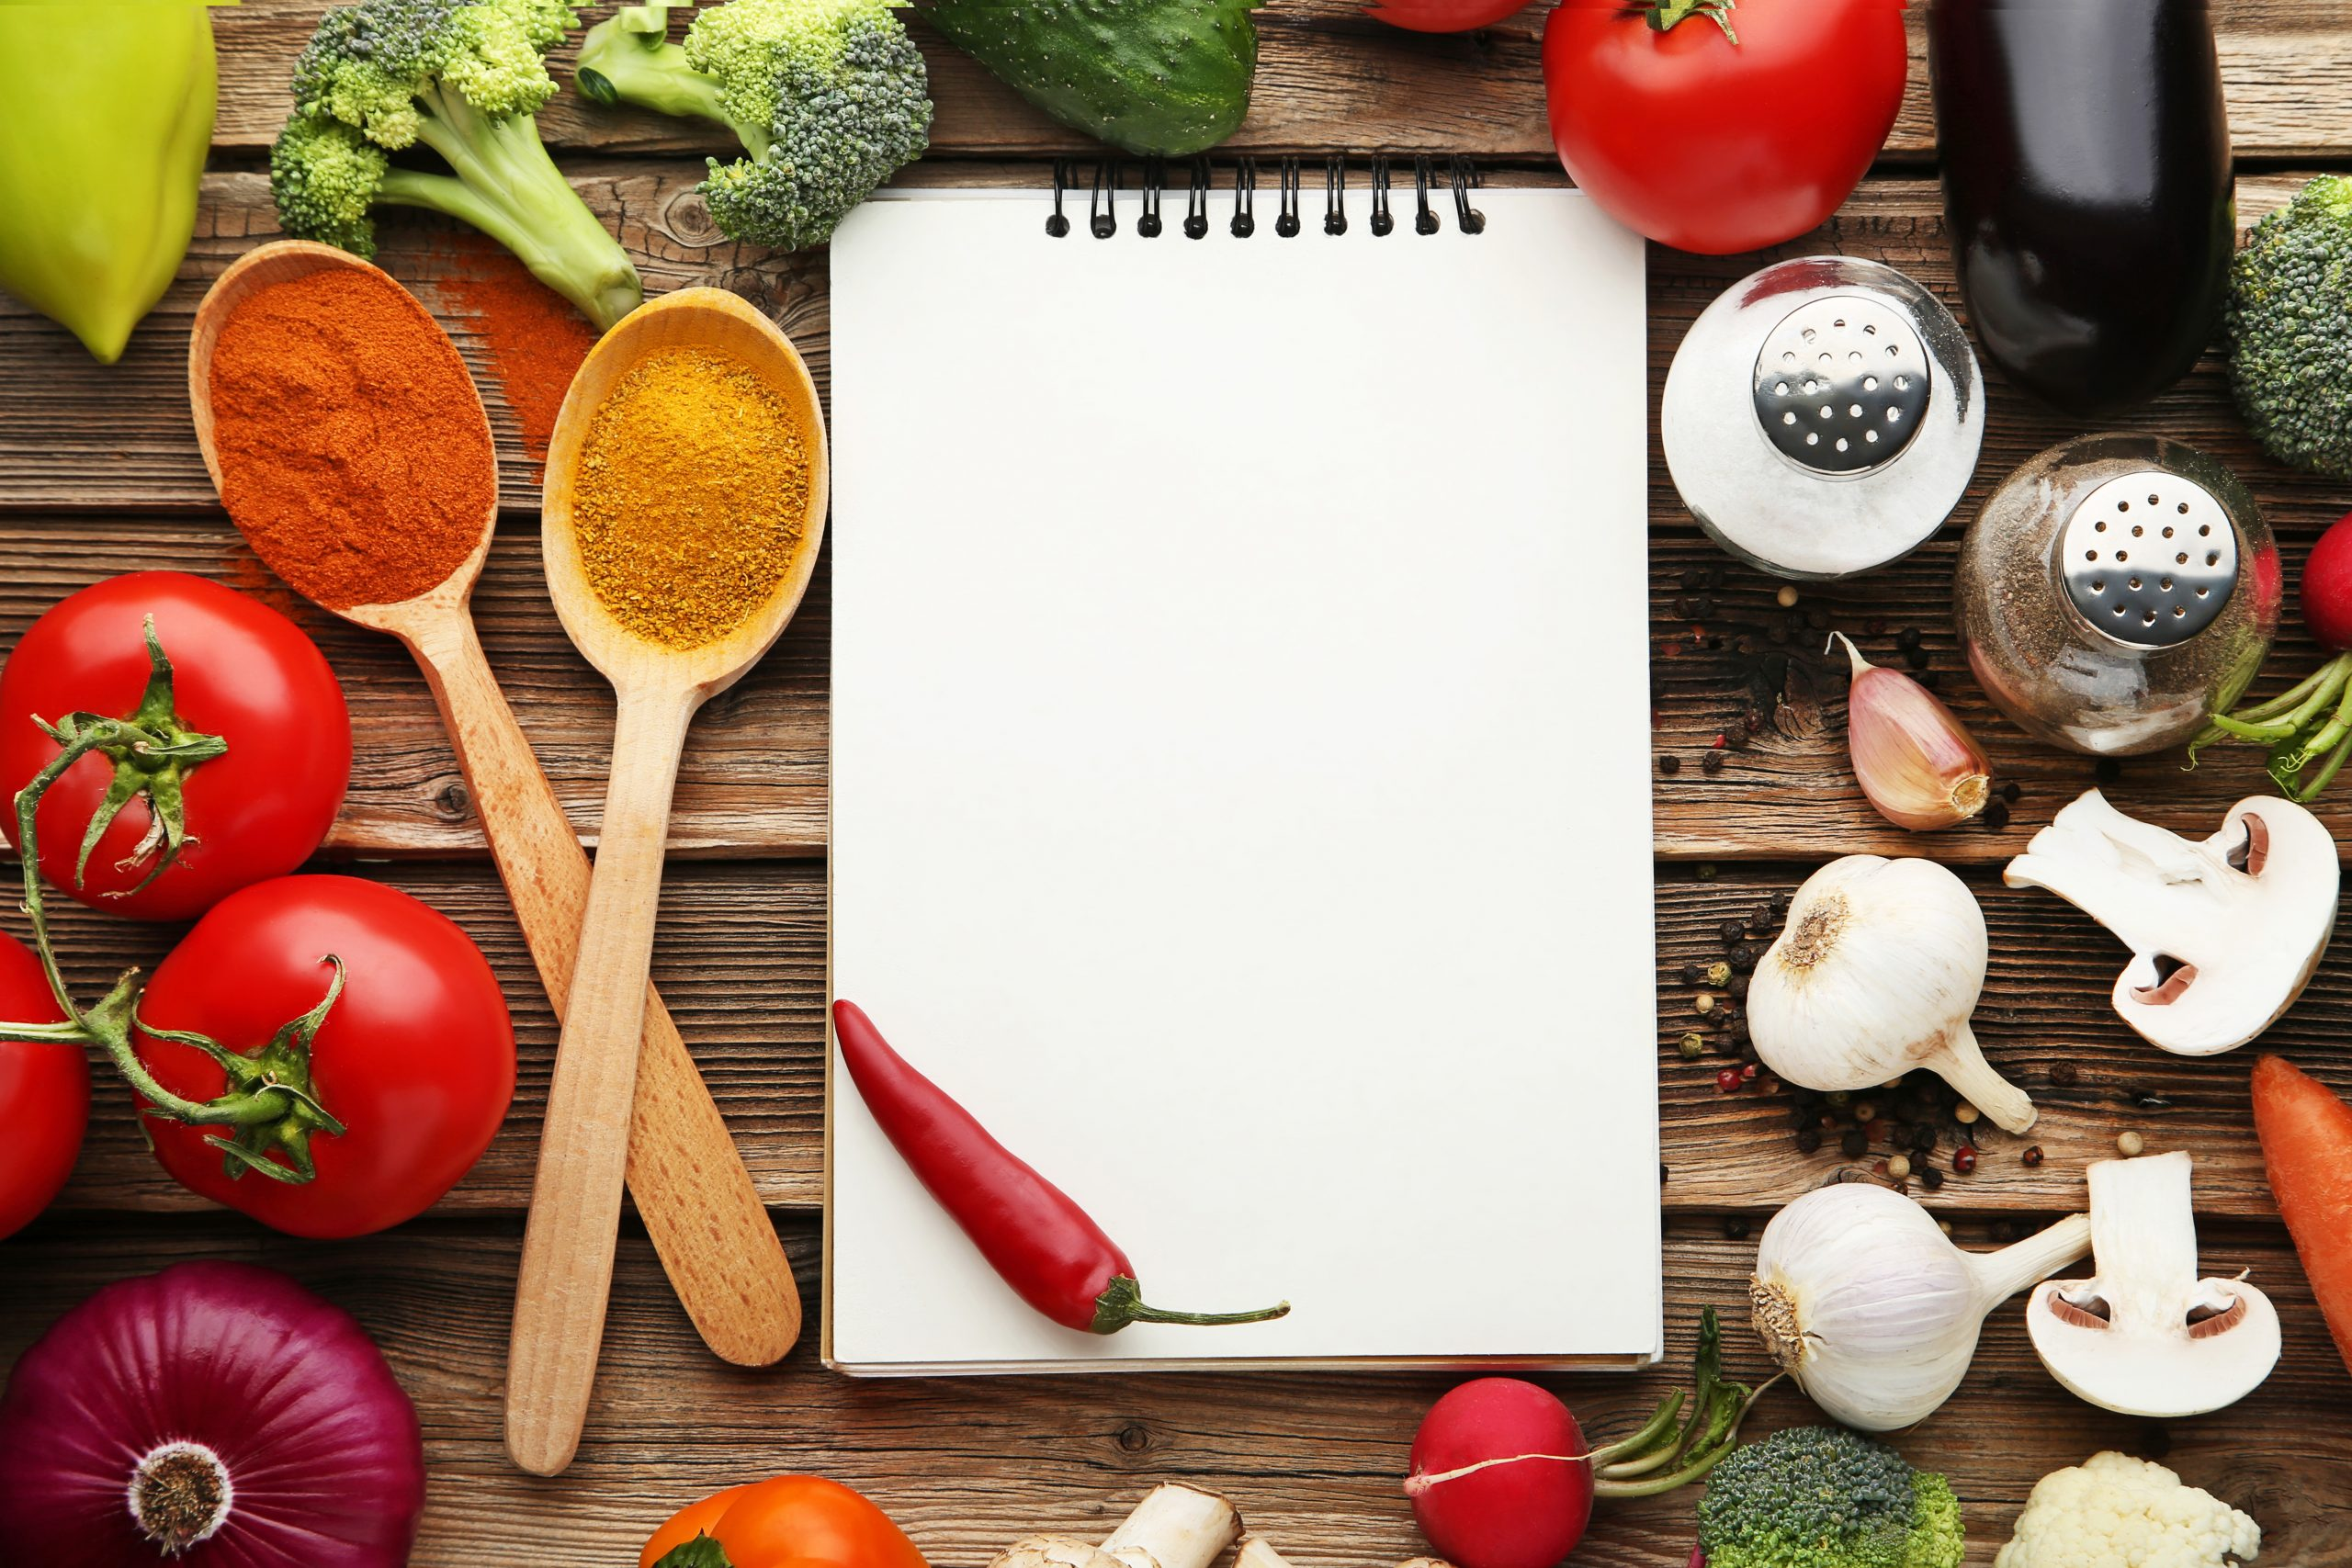 Blank recipe book with vegetables on wooden table